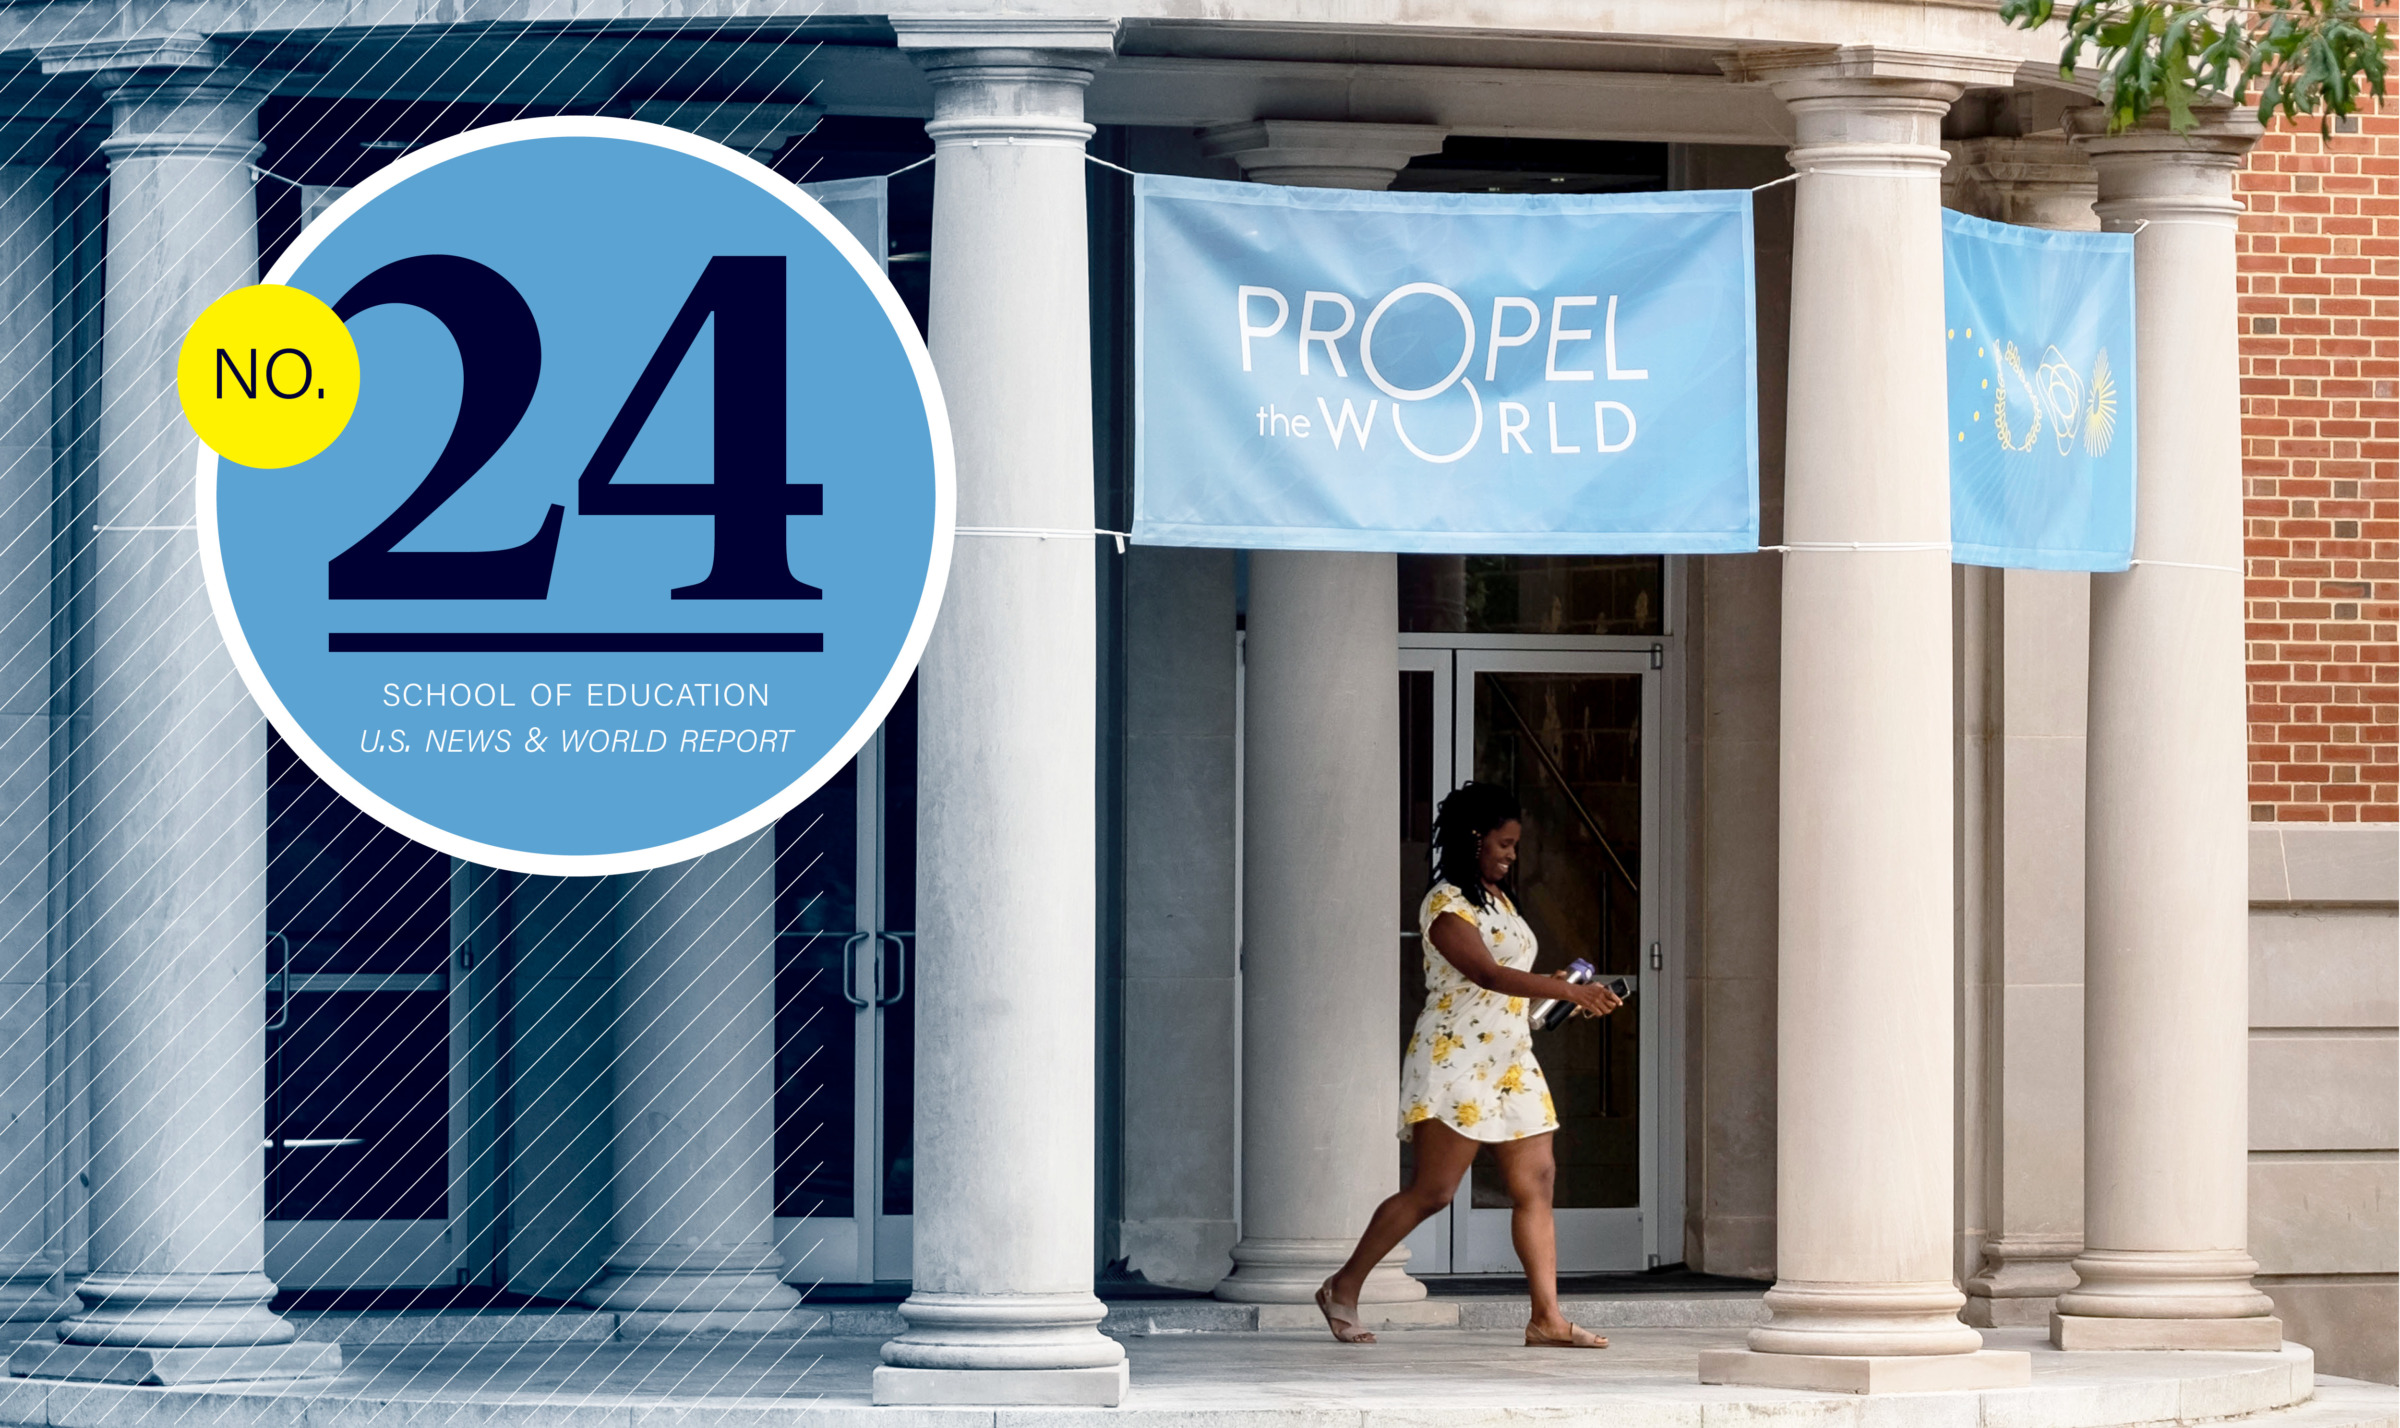 At No. 24, Carolina extends rise in national rankings of schools of education